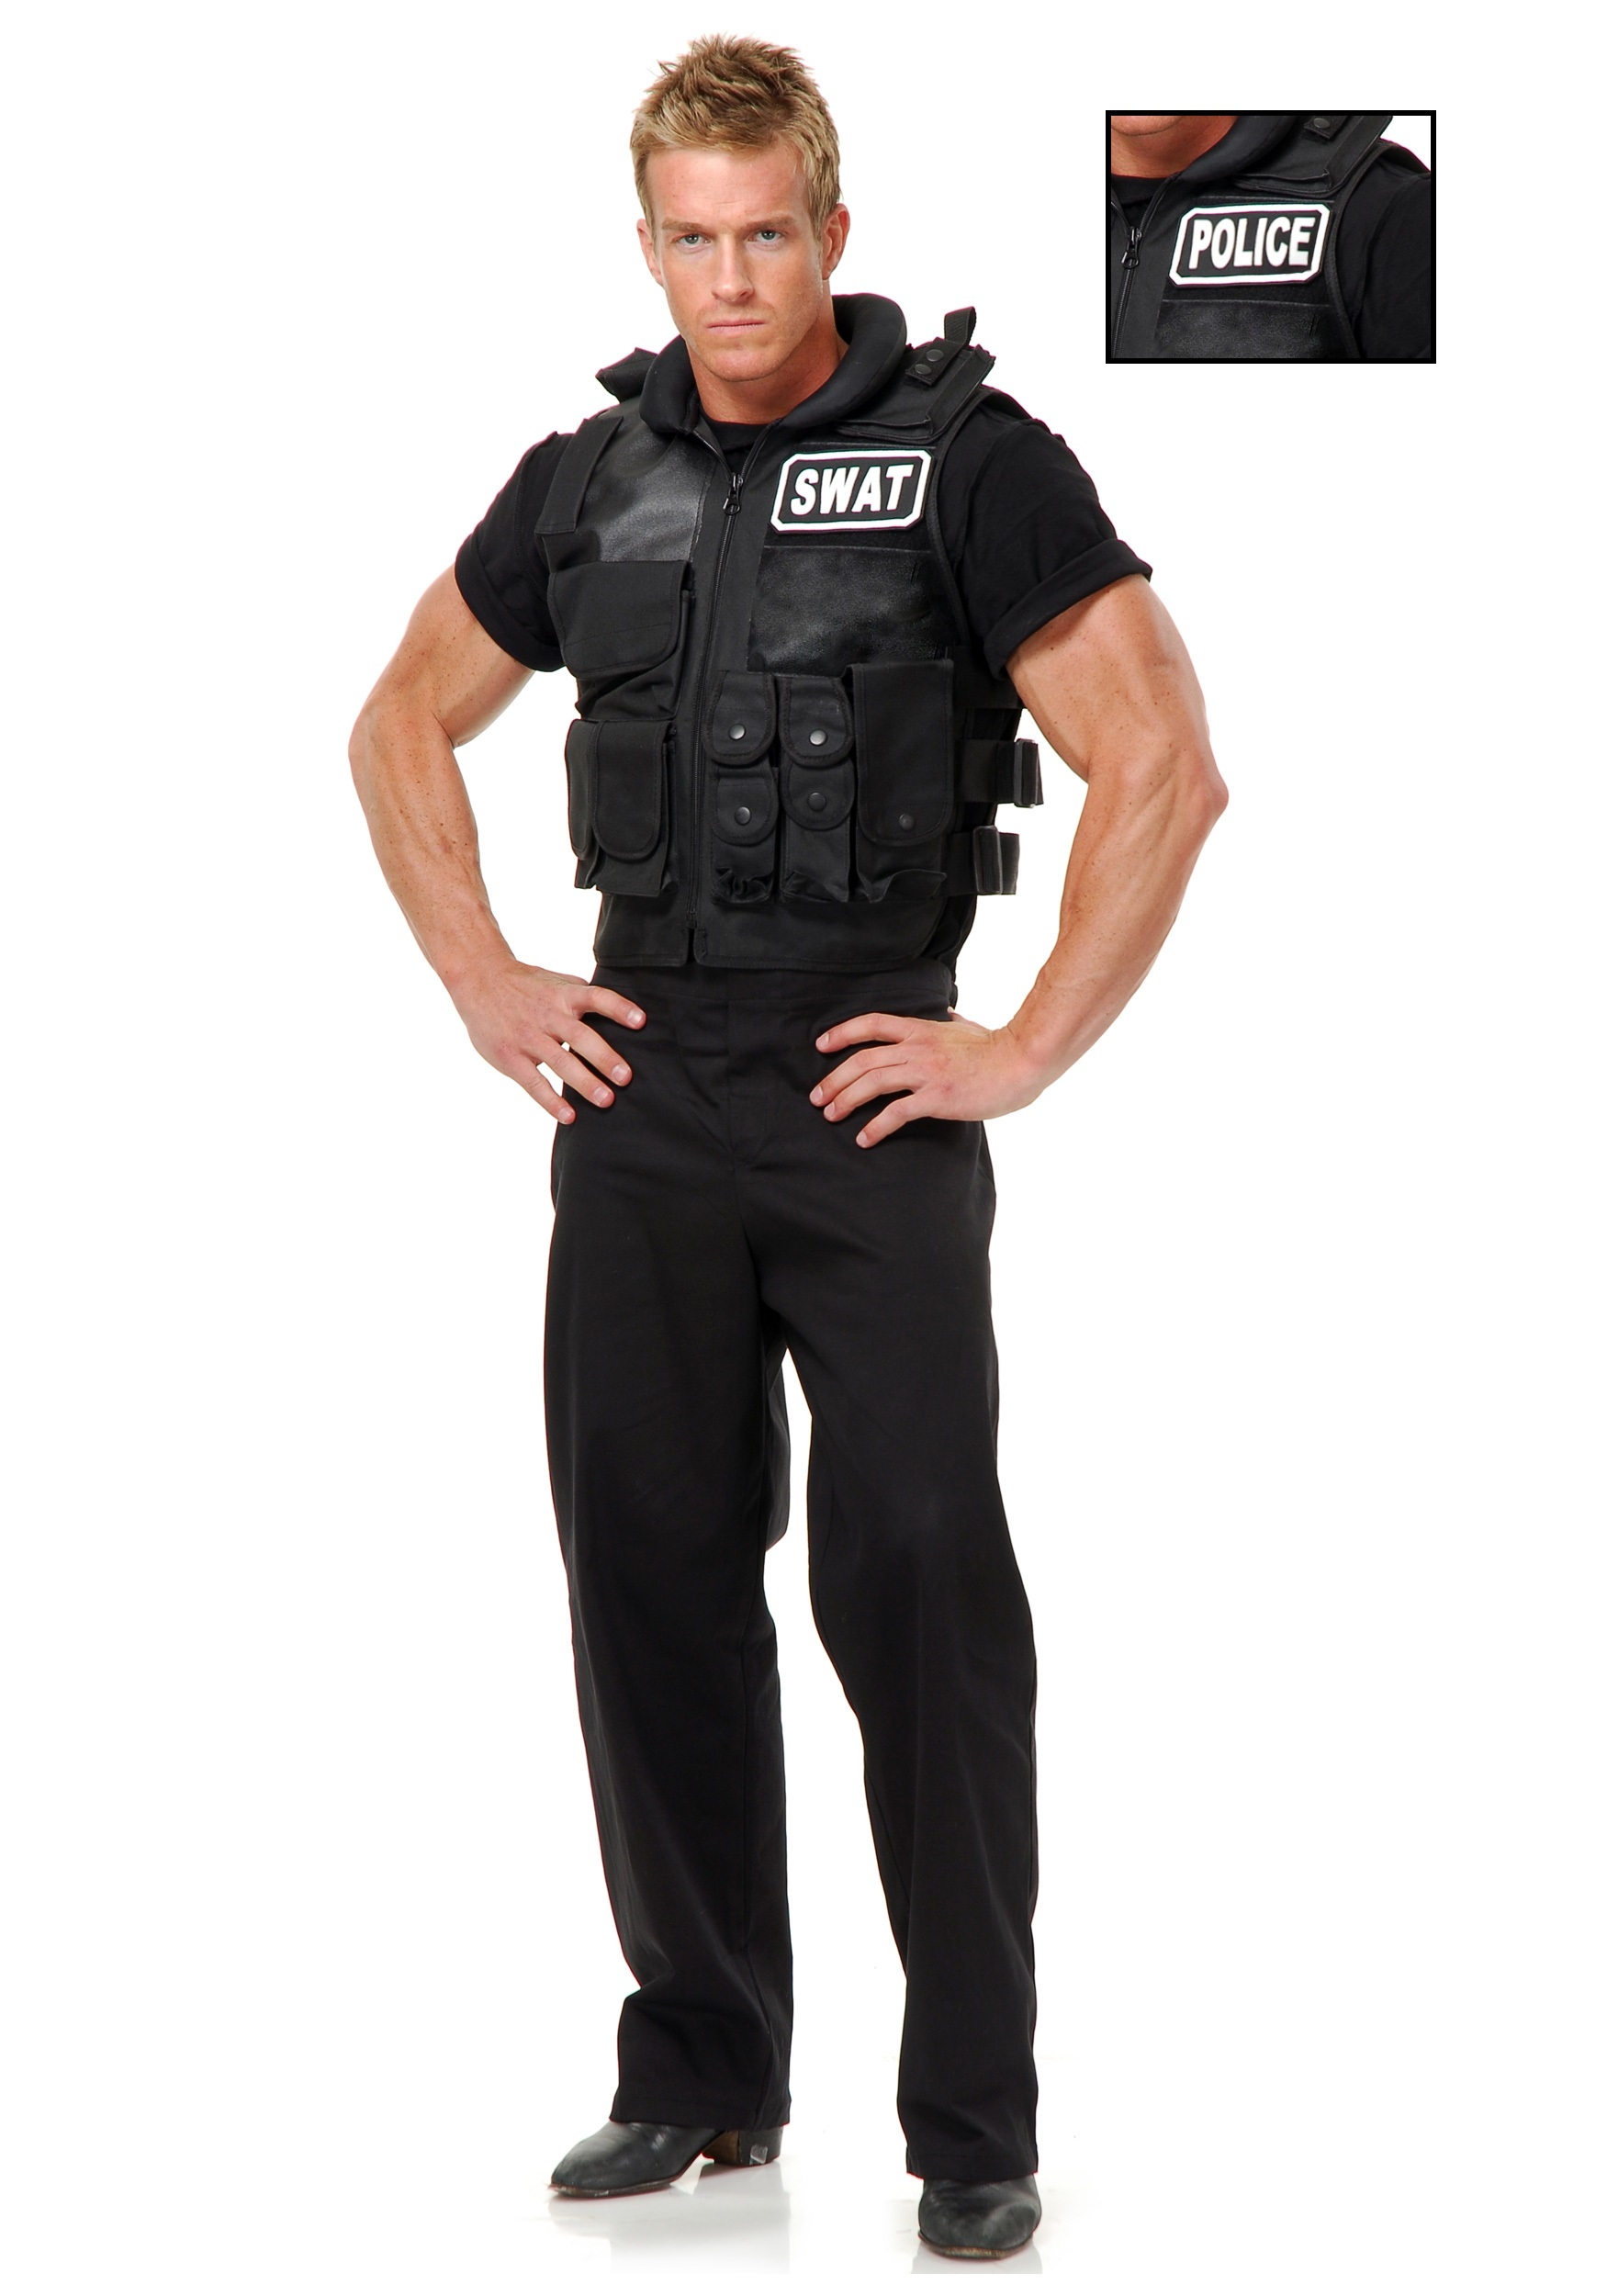 SWAT Officer Vest  sc 1 st  Halloween Costume : cop costume male  - Germanpascual.Com